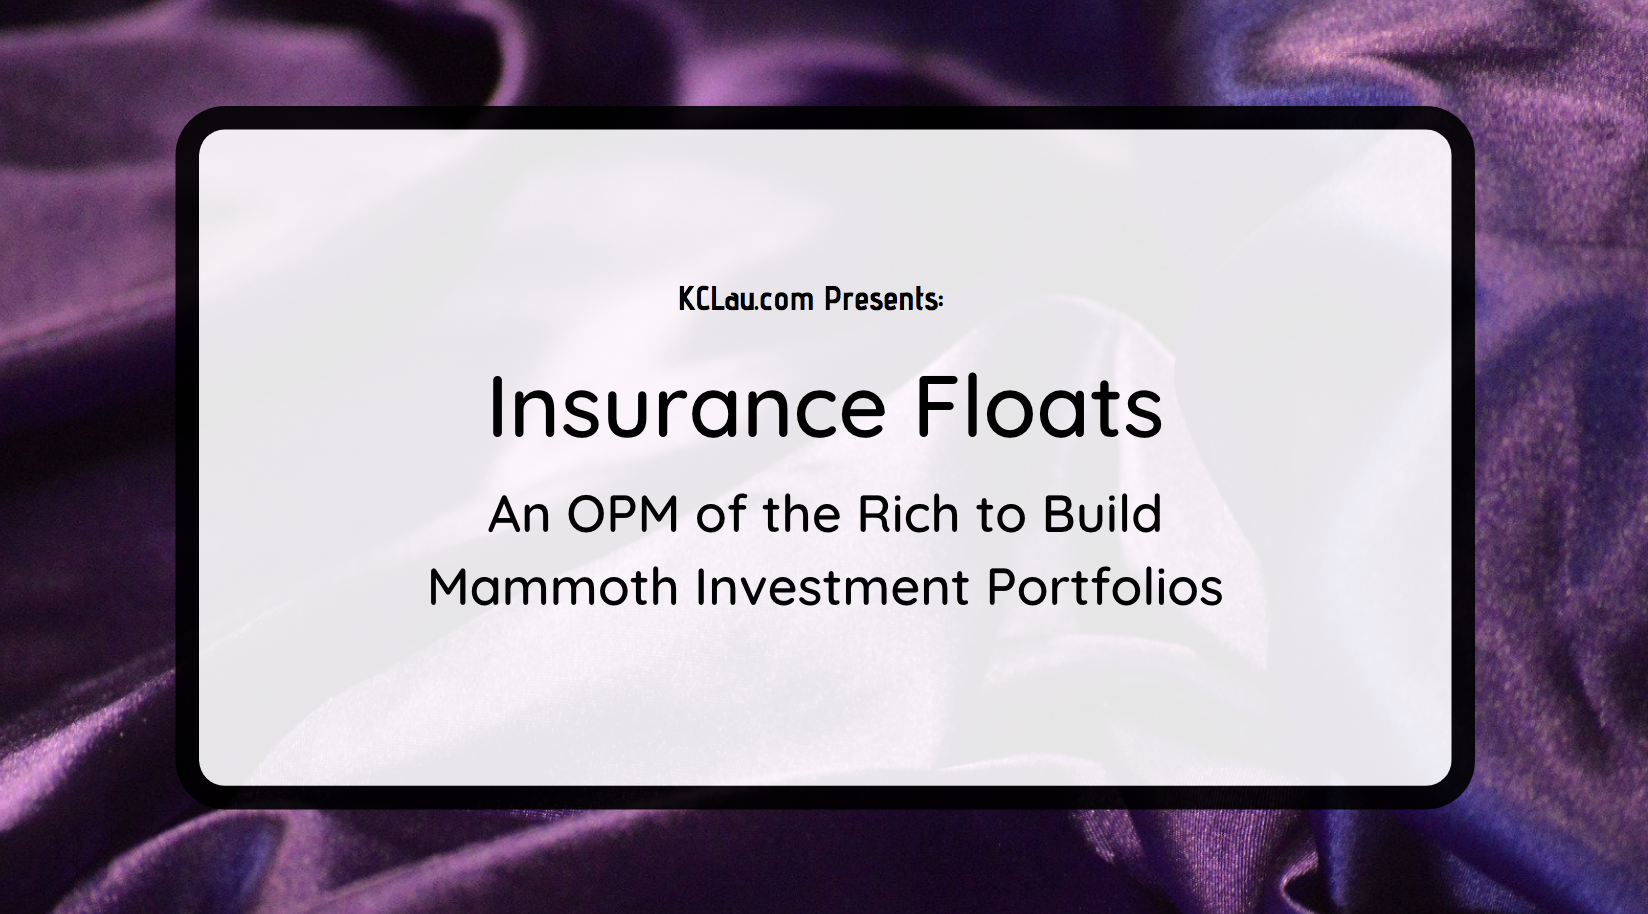 Insurance Float: an OPM of the Rich to Build Mammoth Investment Portfolios